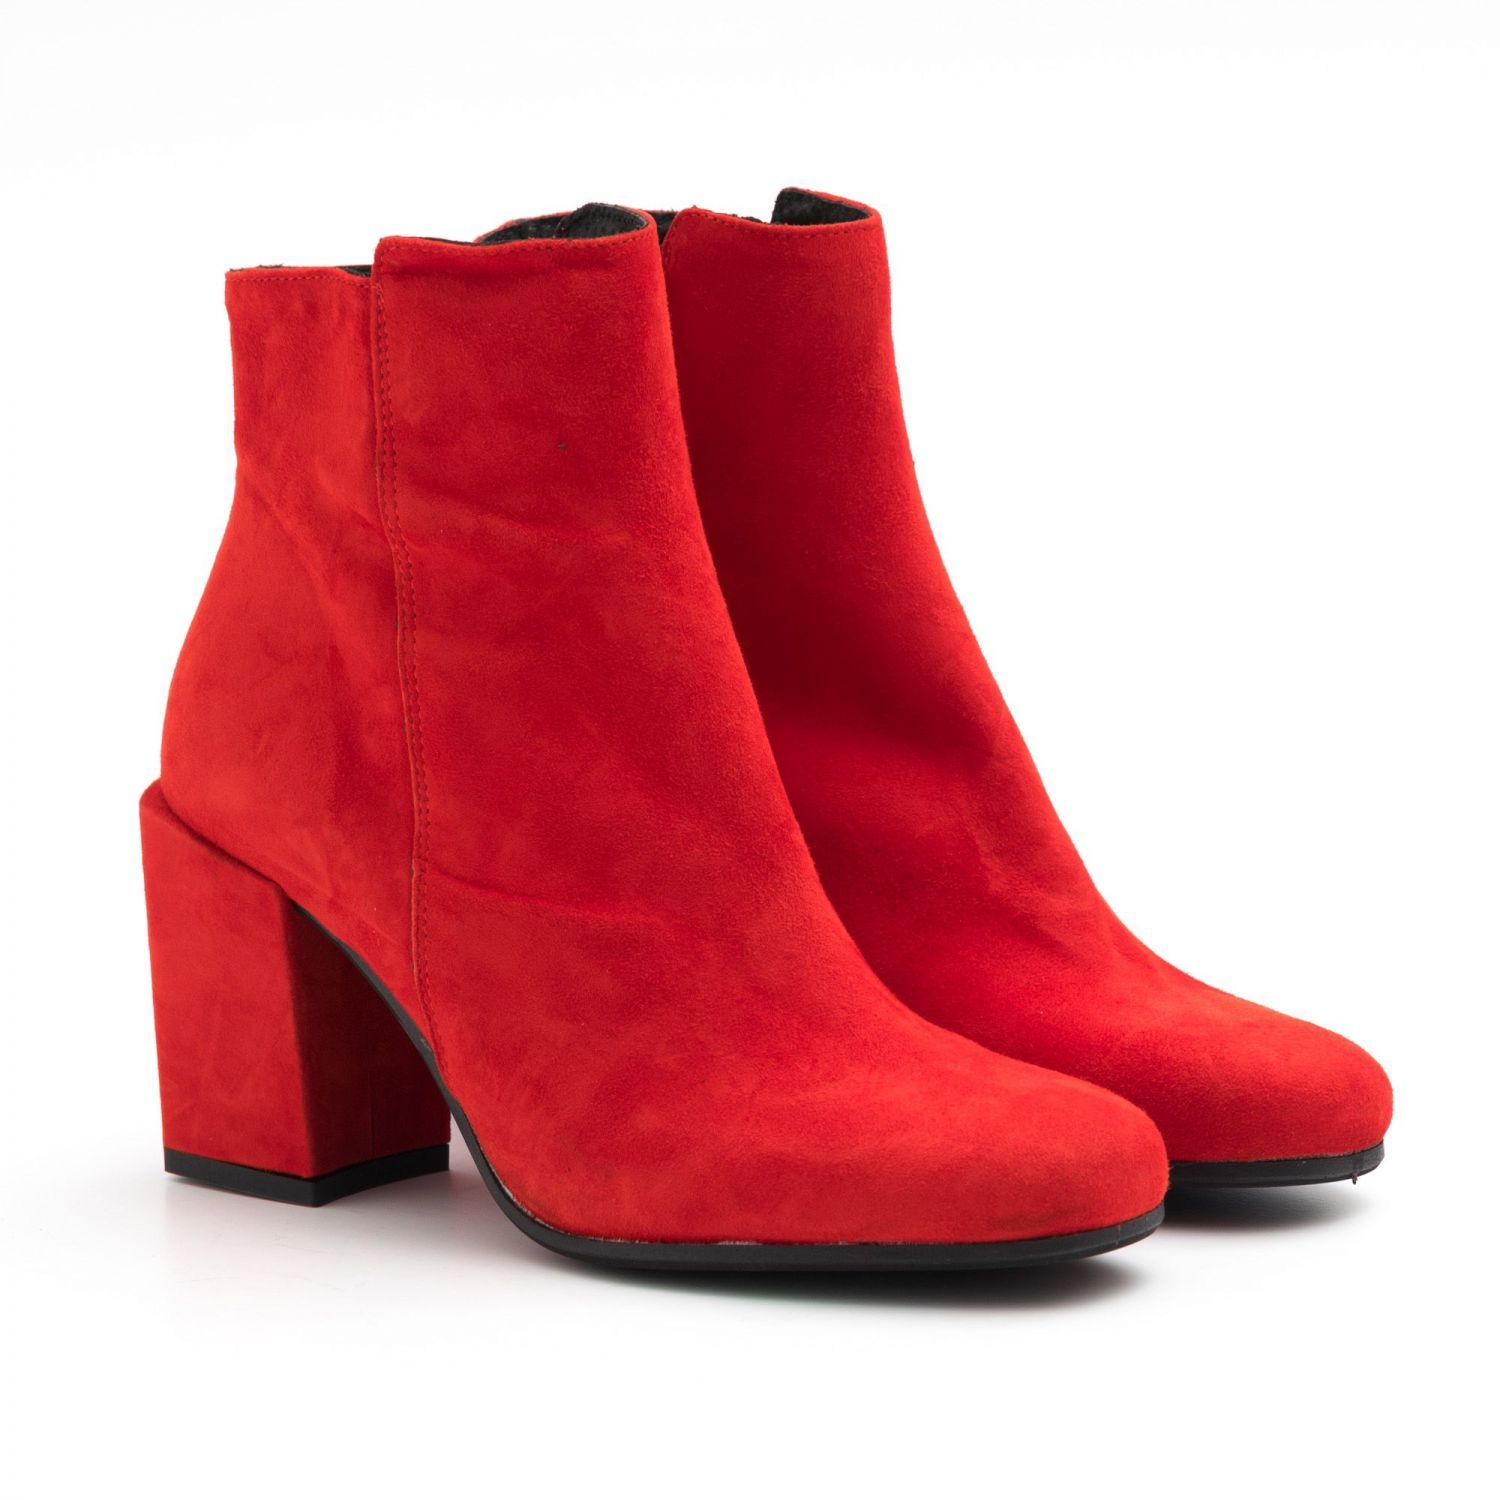 Red Suede Round Toe Sangiorgio Ankle Boots In 2020 Boots Red Suede Ankle Boots